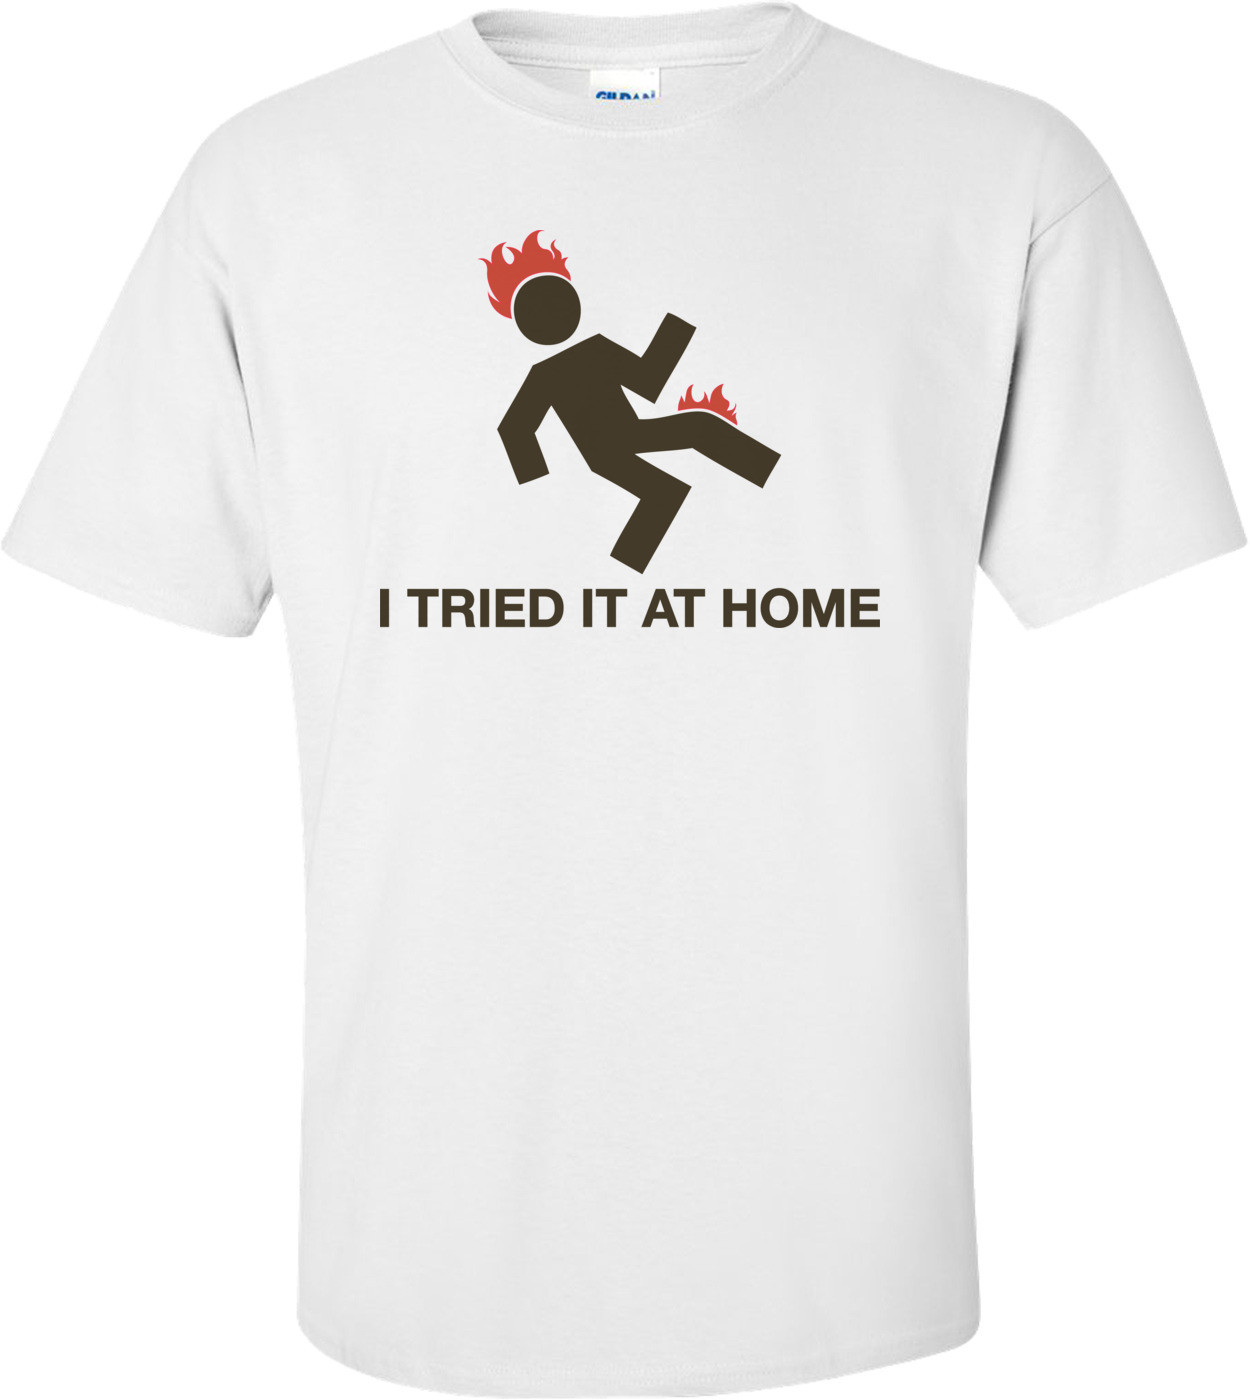 I Tried It At Home Shirt